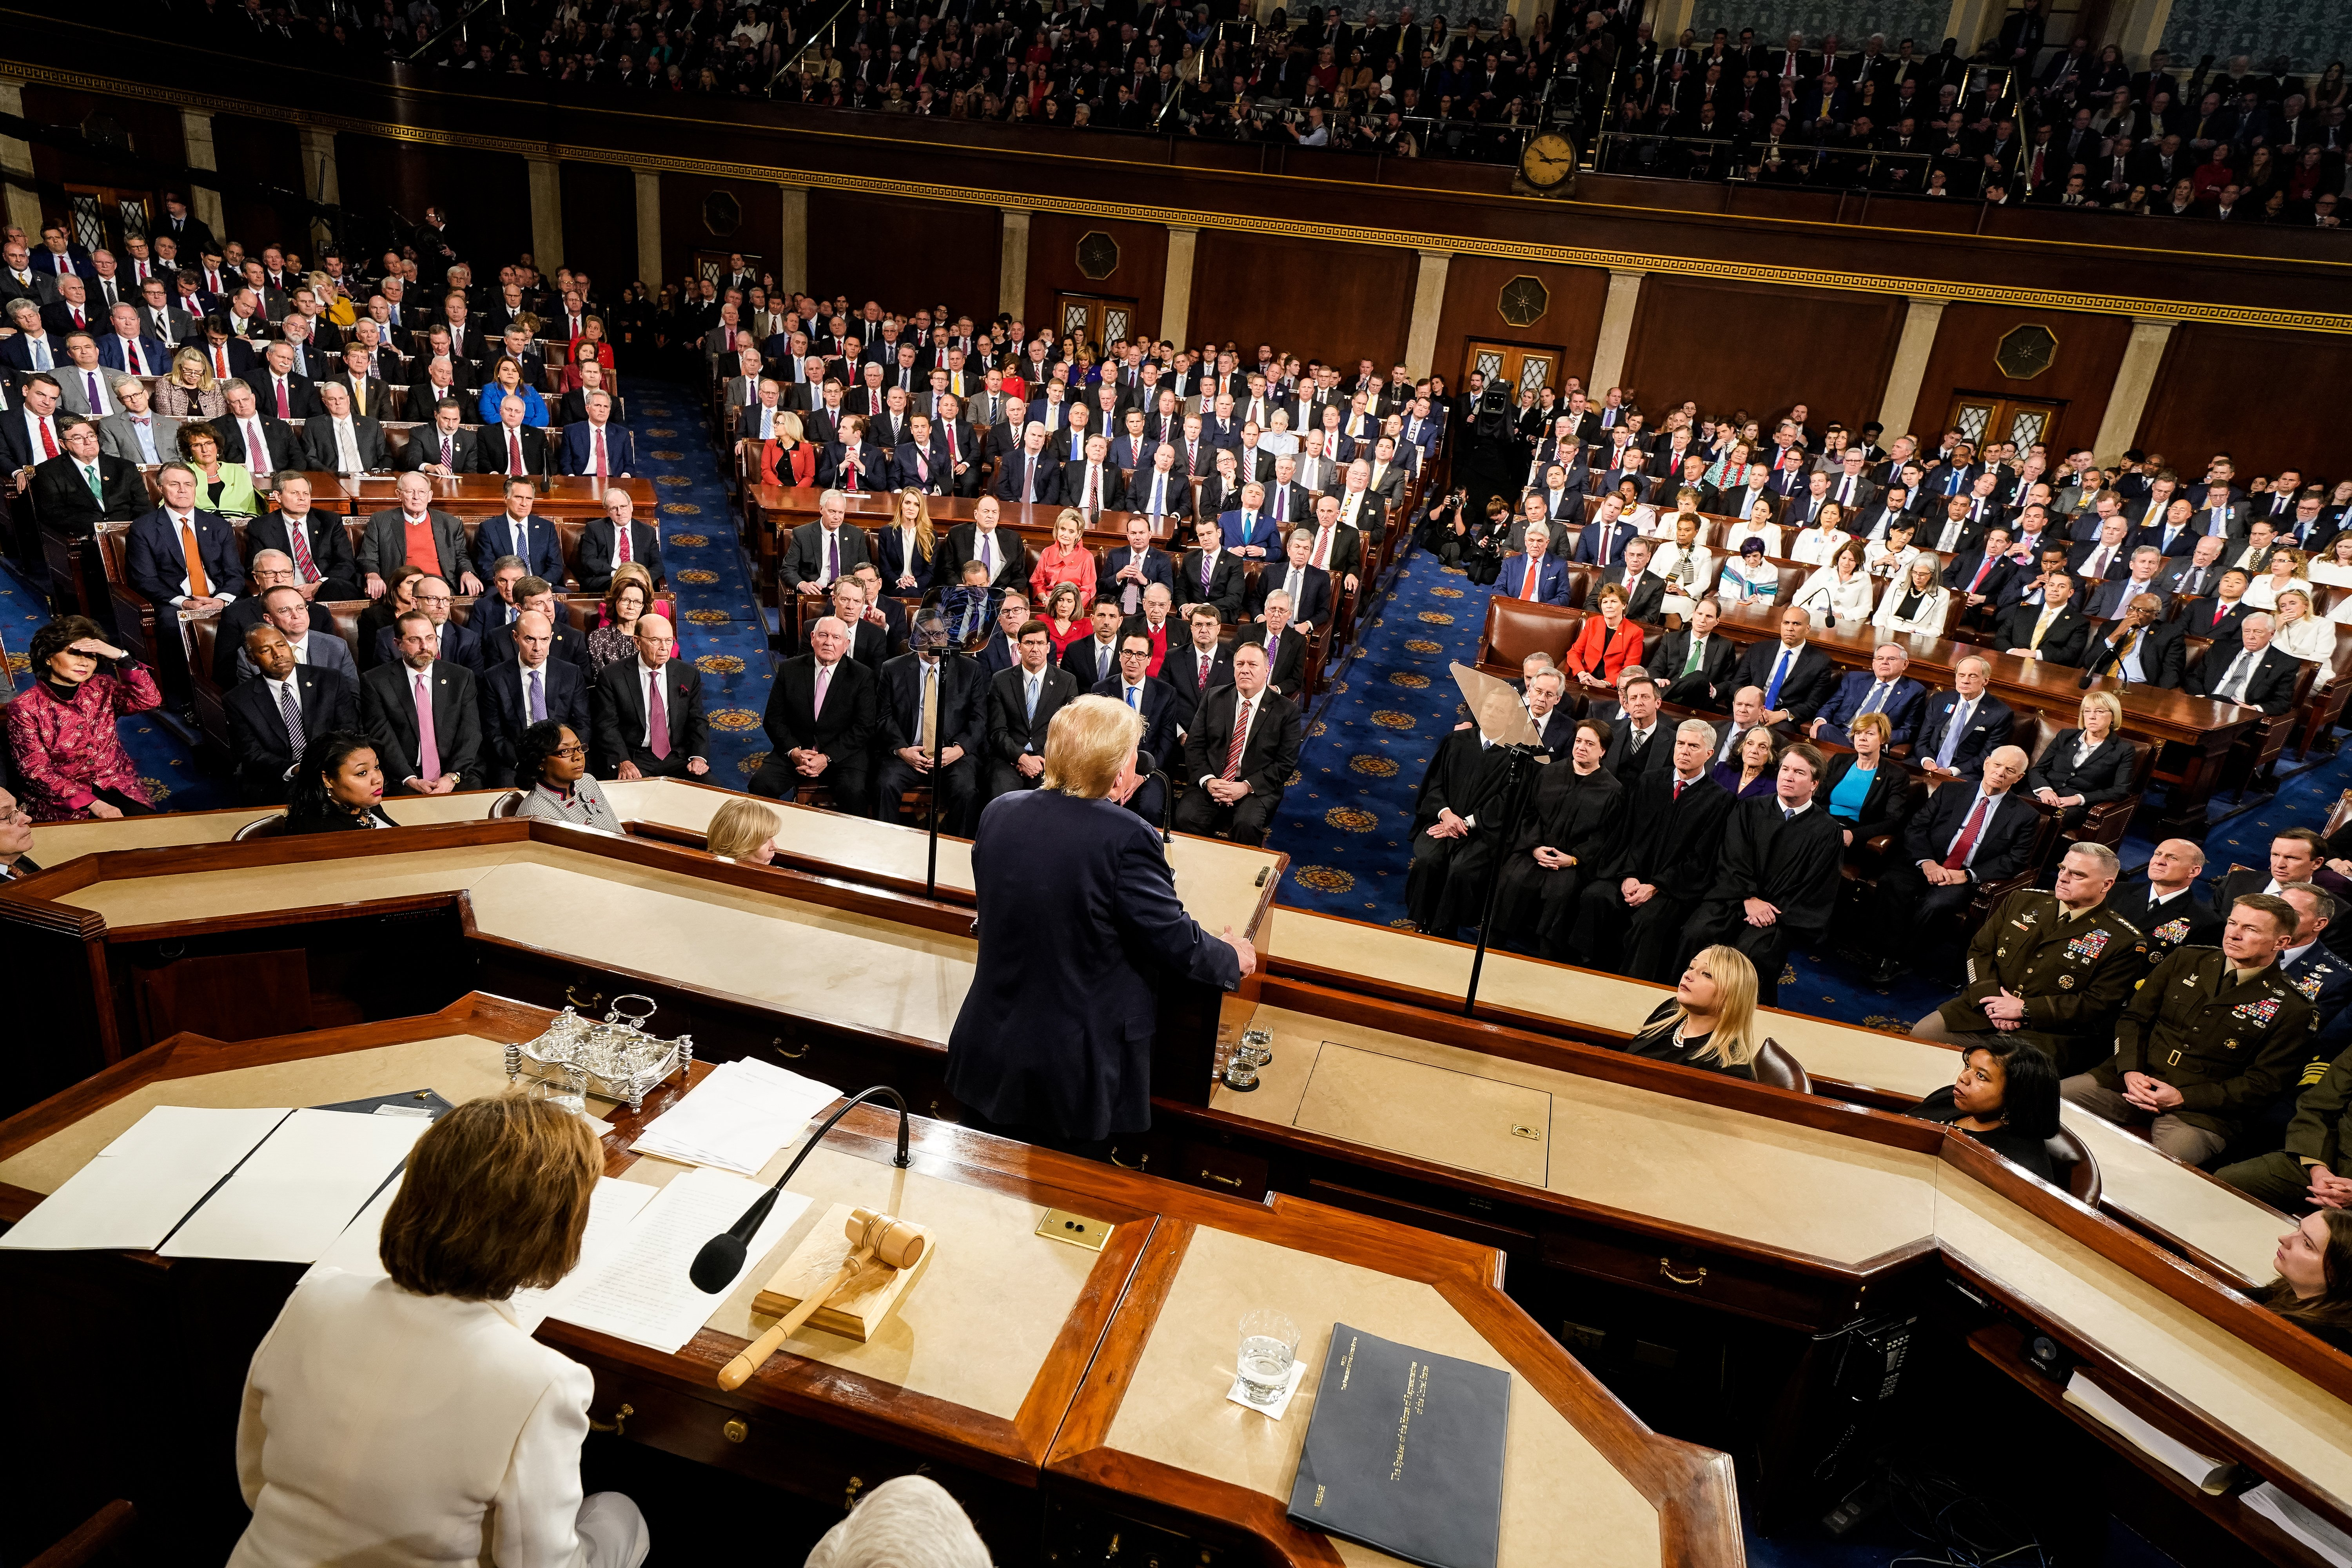 WASHINGTON, DC - FEBRUARY 04: U.S. President Donald Trump delivers the State of the Union address at the U.S. Capitol on February 4, 2020 in Washington, DC. President Trump delivers his third State of the Union to the nation the night before the U.S. Senate is set to vote in his impeachment trial. (Photo by Doug Mills-Pool/Getty Images)